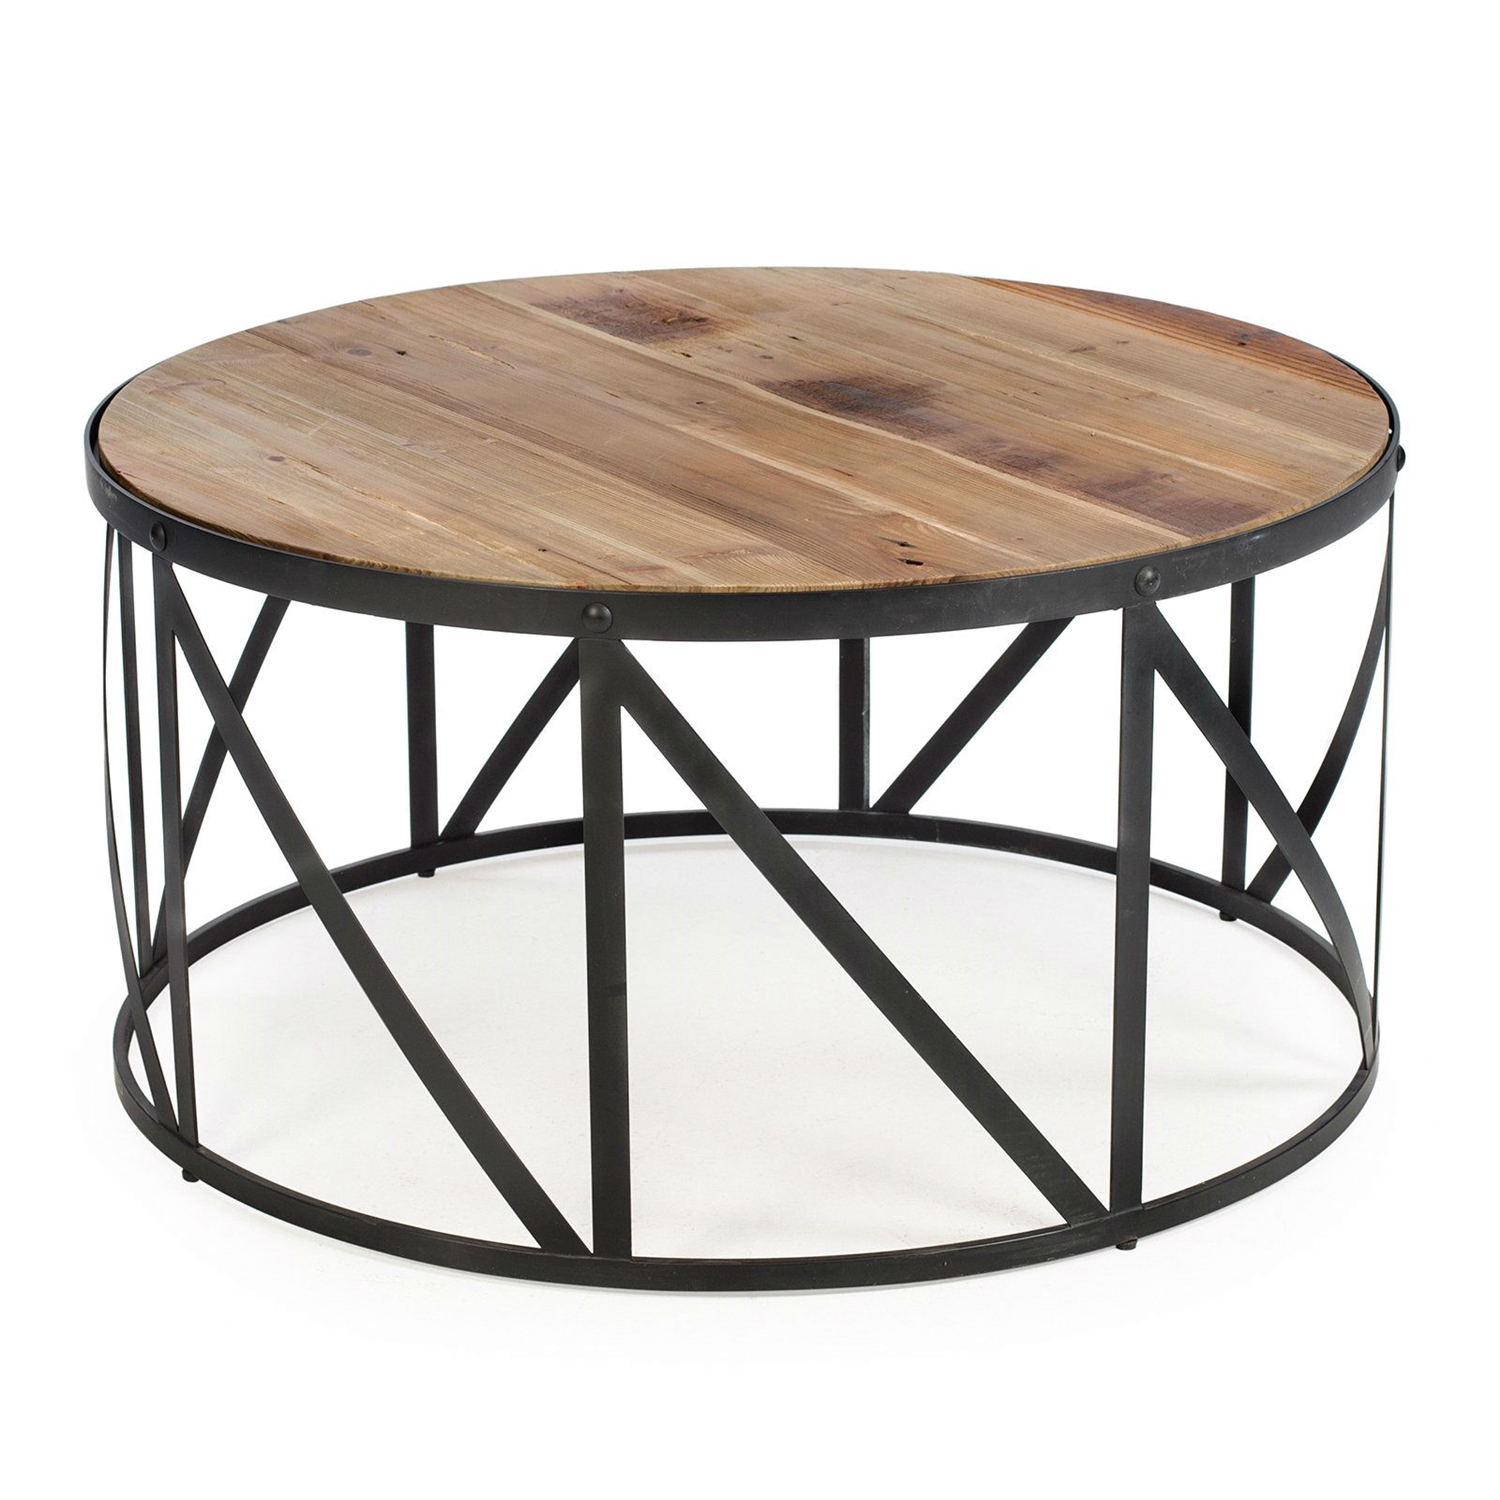 Drum Shaped Coffee Table.Round Metal And Wood Drum Shaped Coffee Table